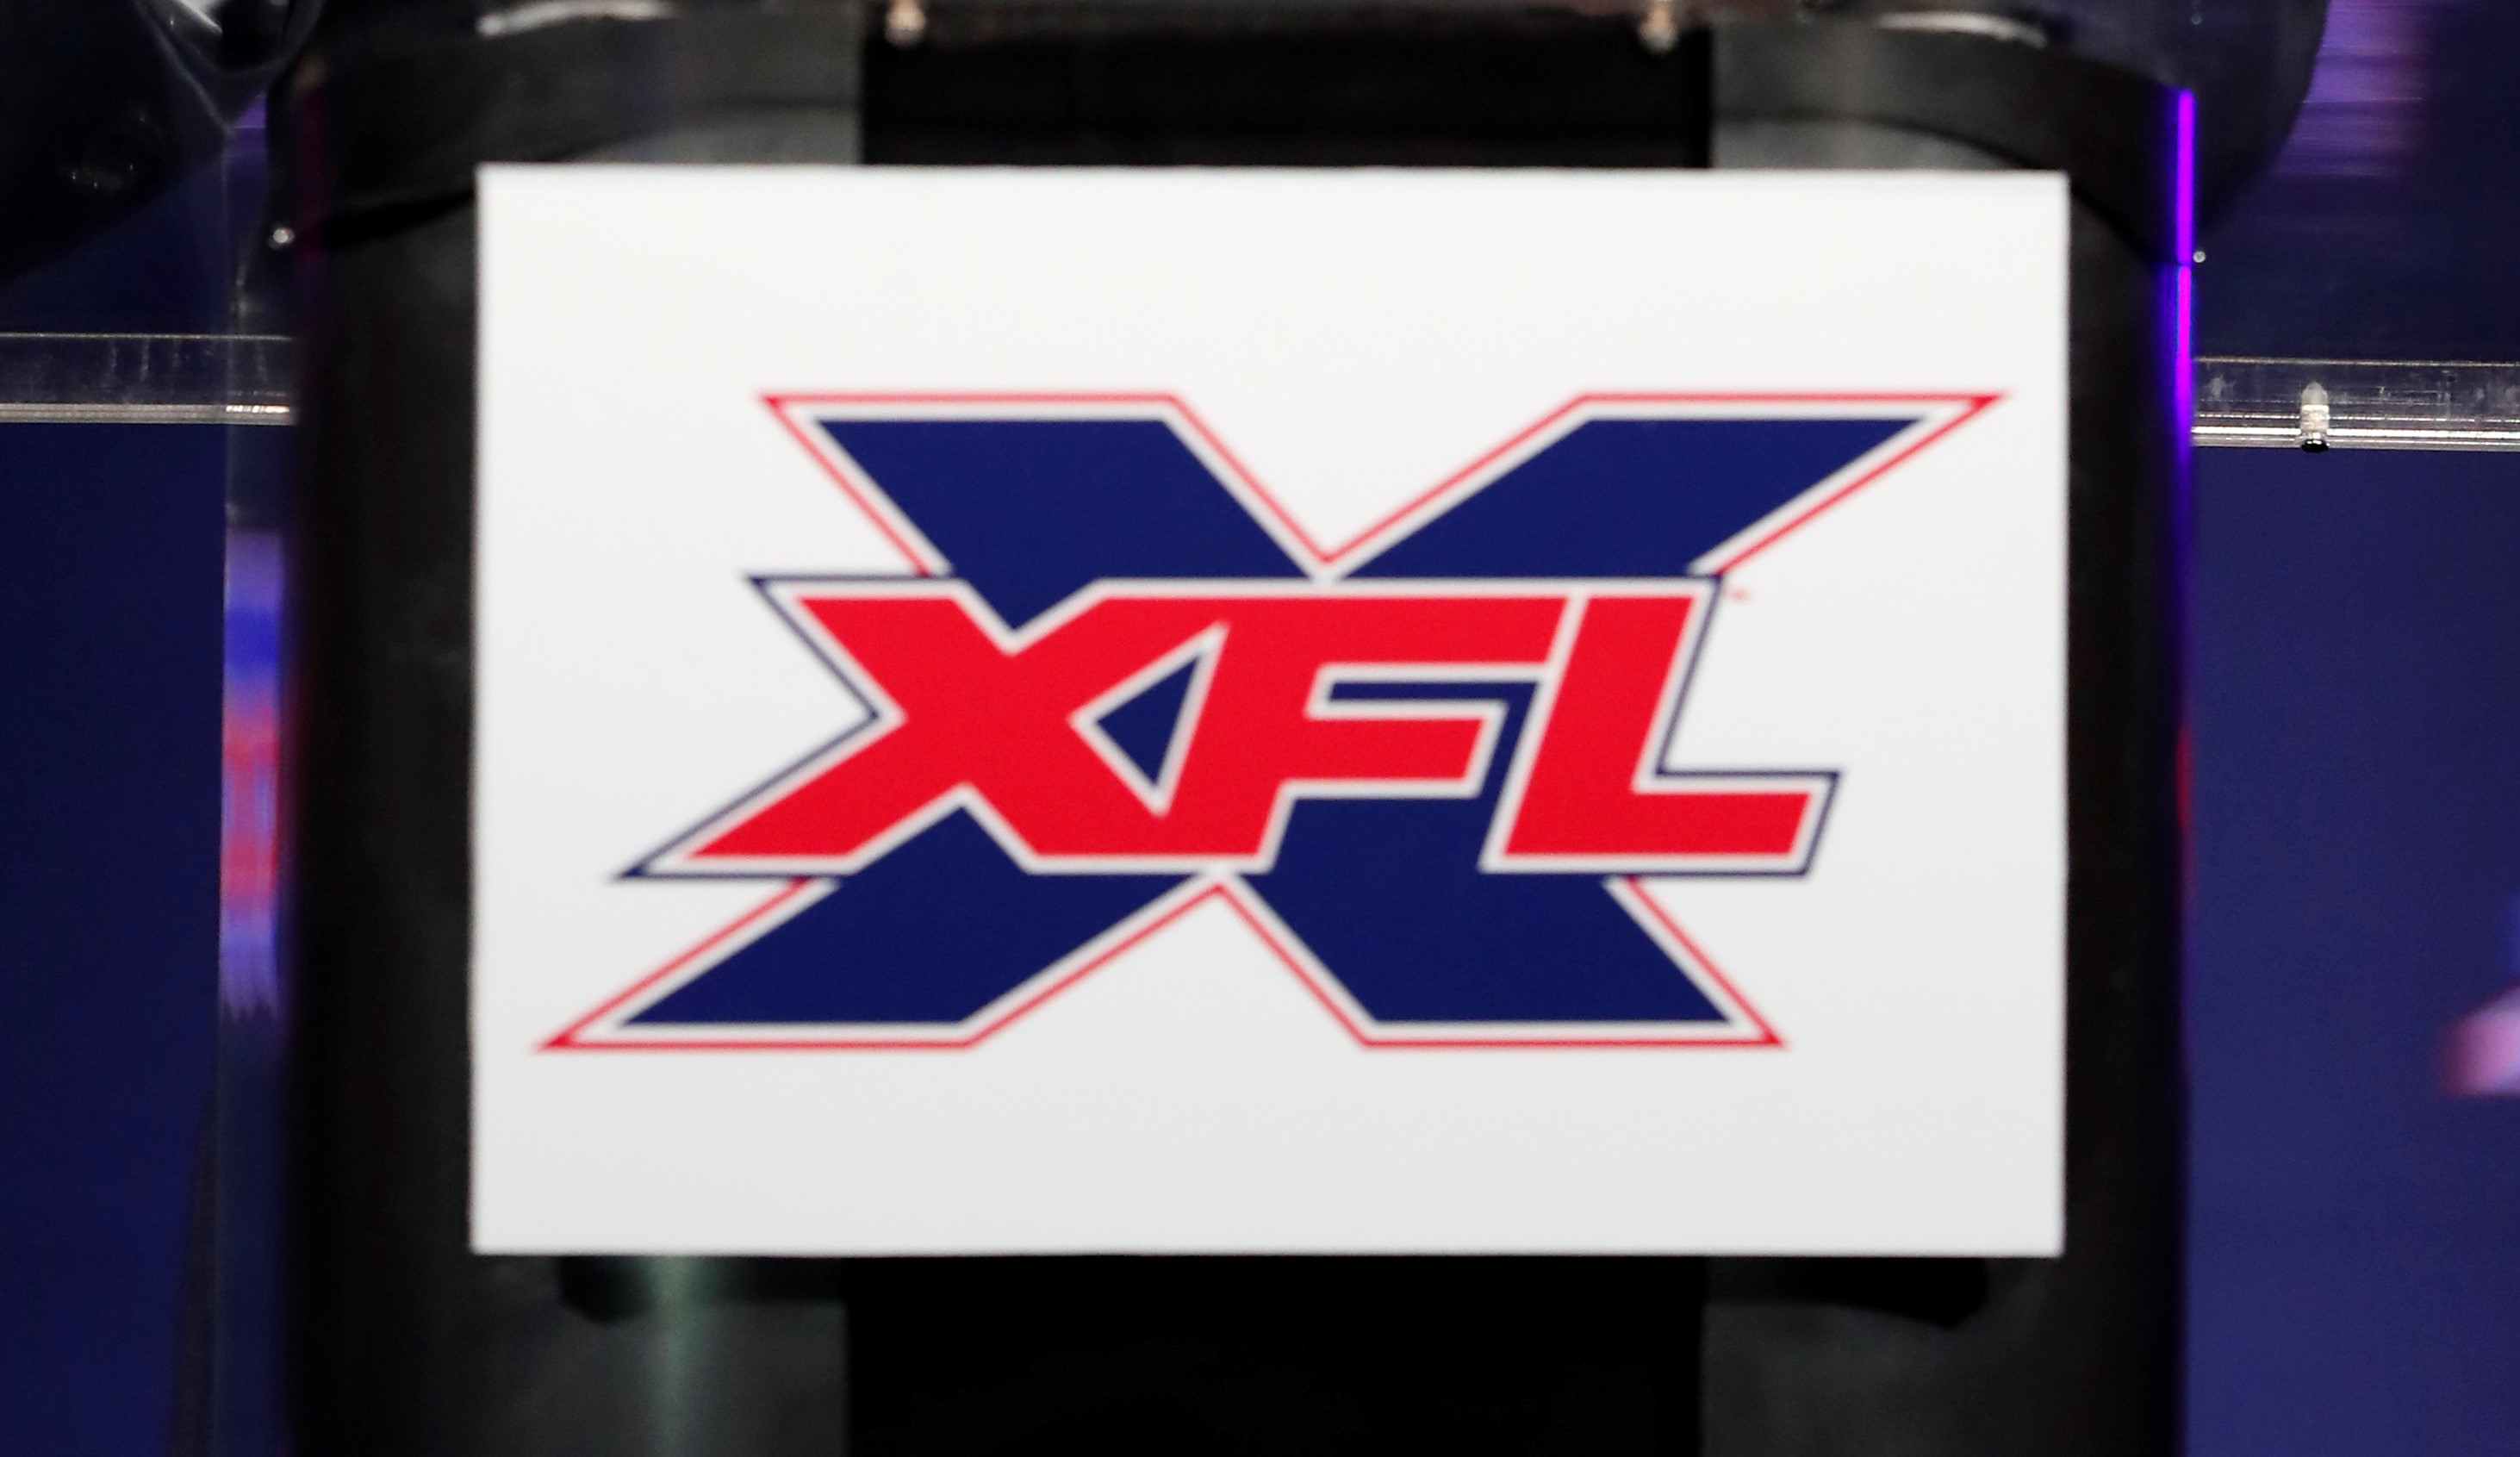 3 Penn State players make XFL's first set of rosters